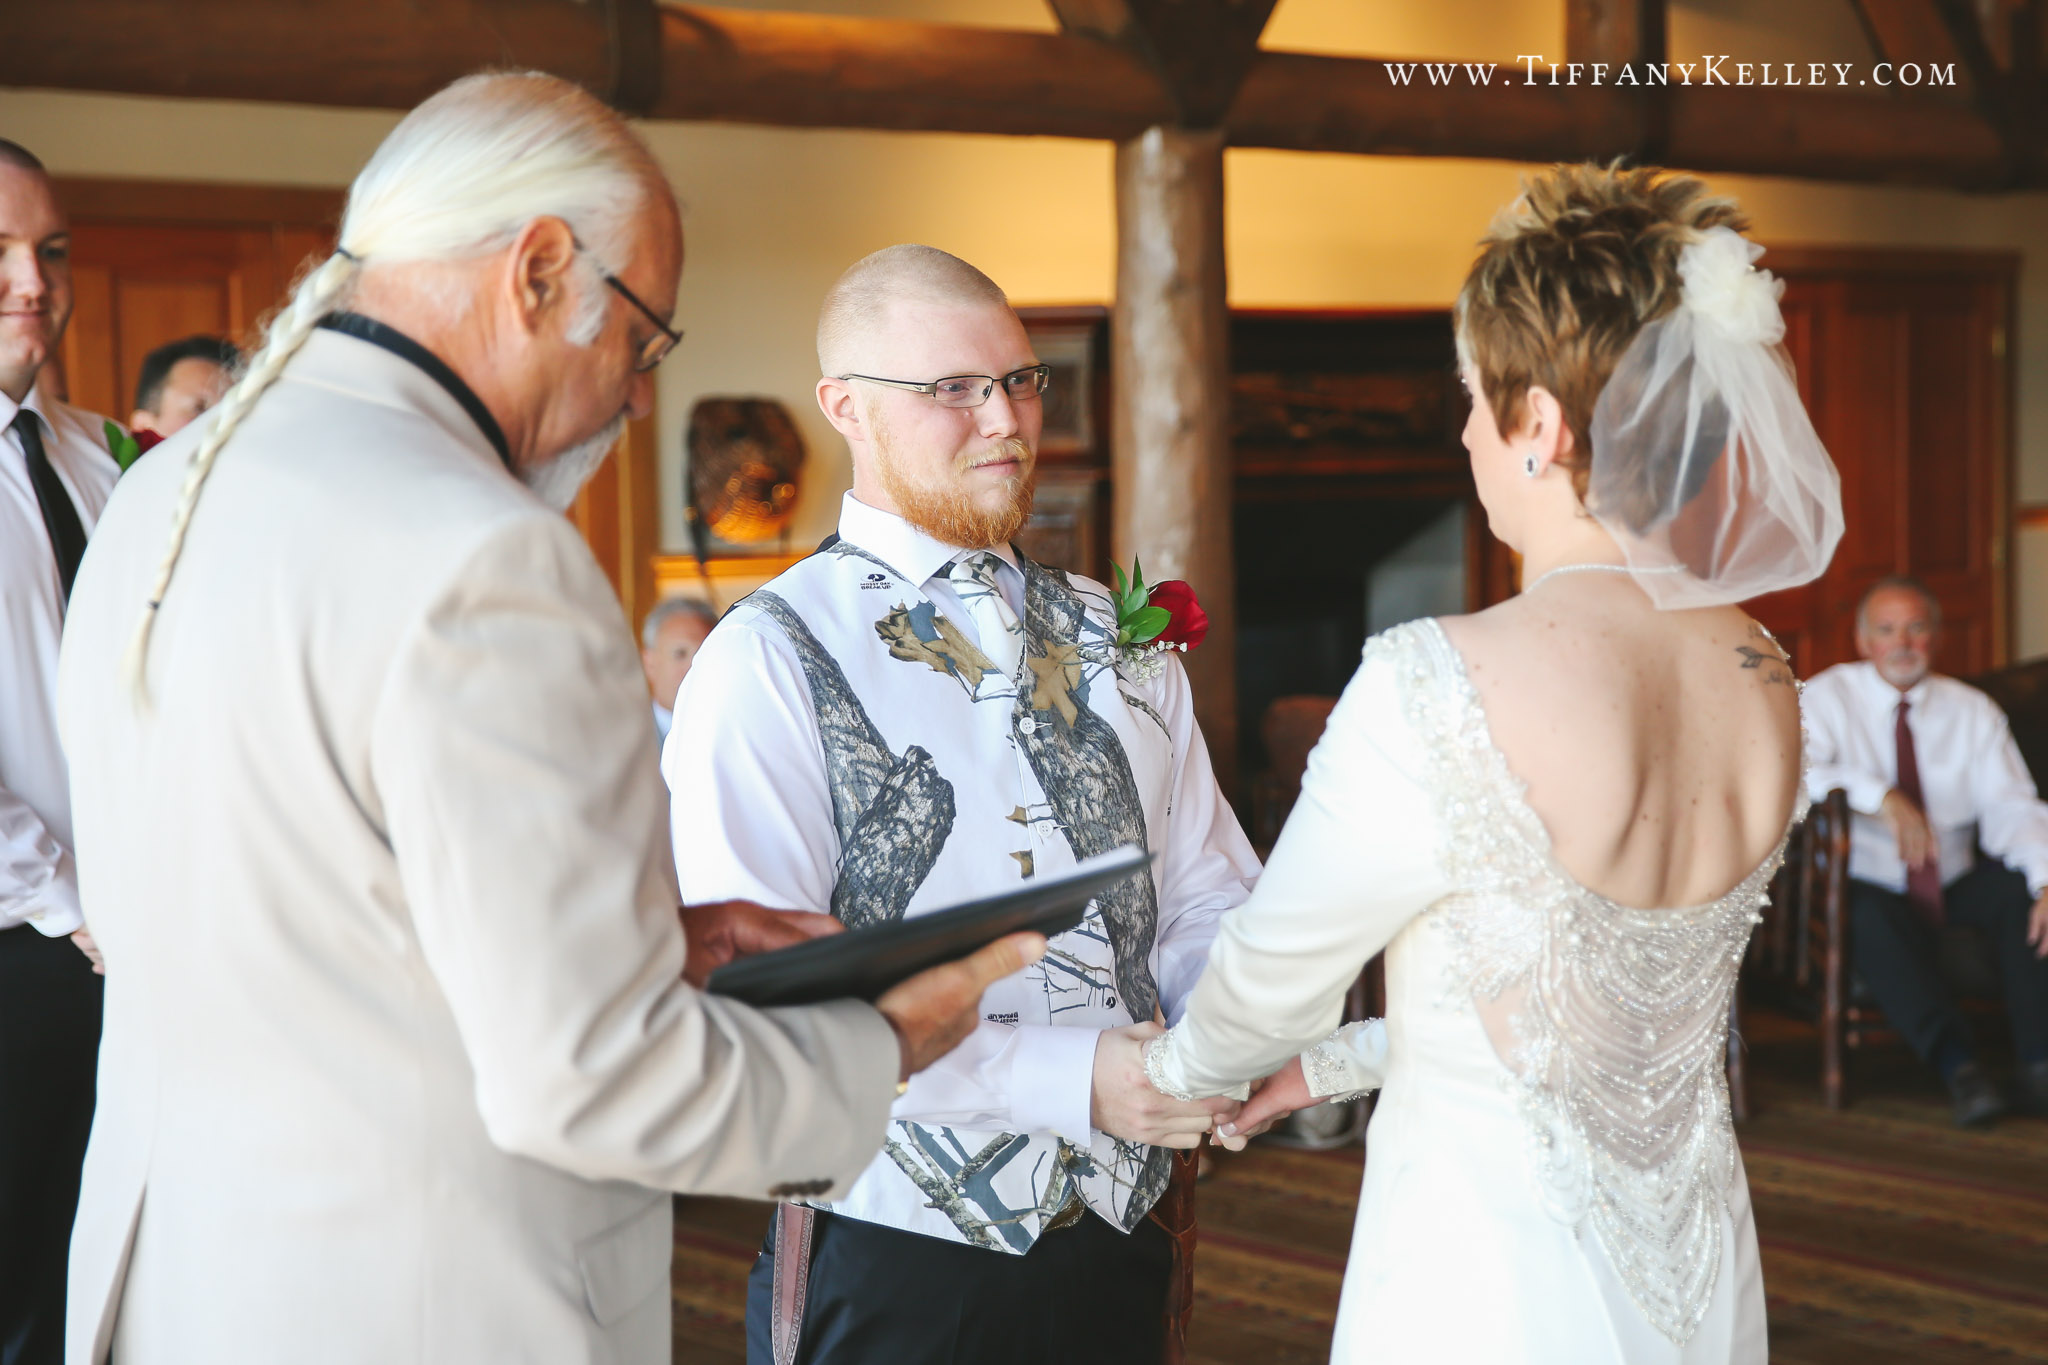 02-big-cedar-lodge-elopement-branson-mo-wedding-photographer-tiffany-kelley-photography